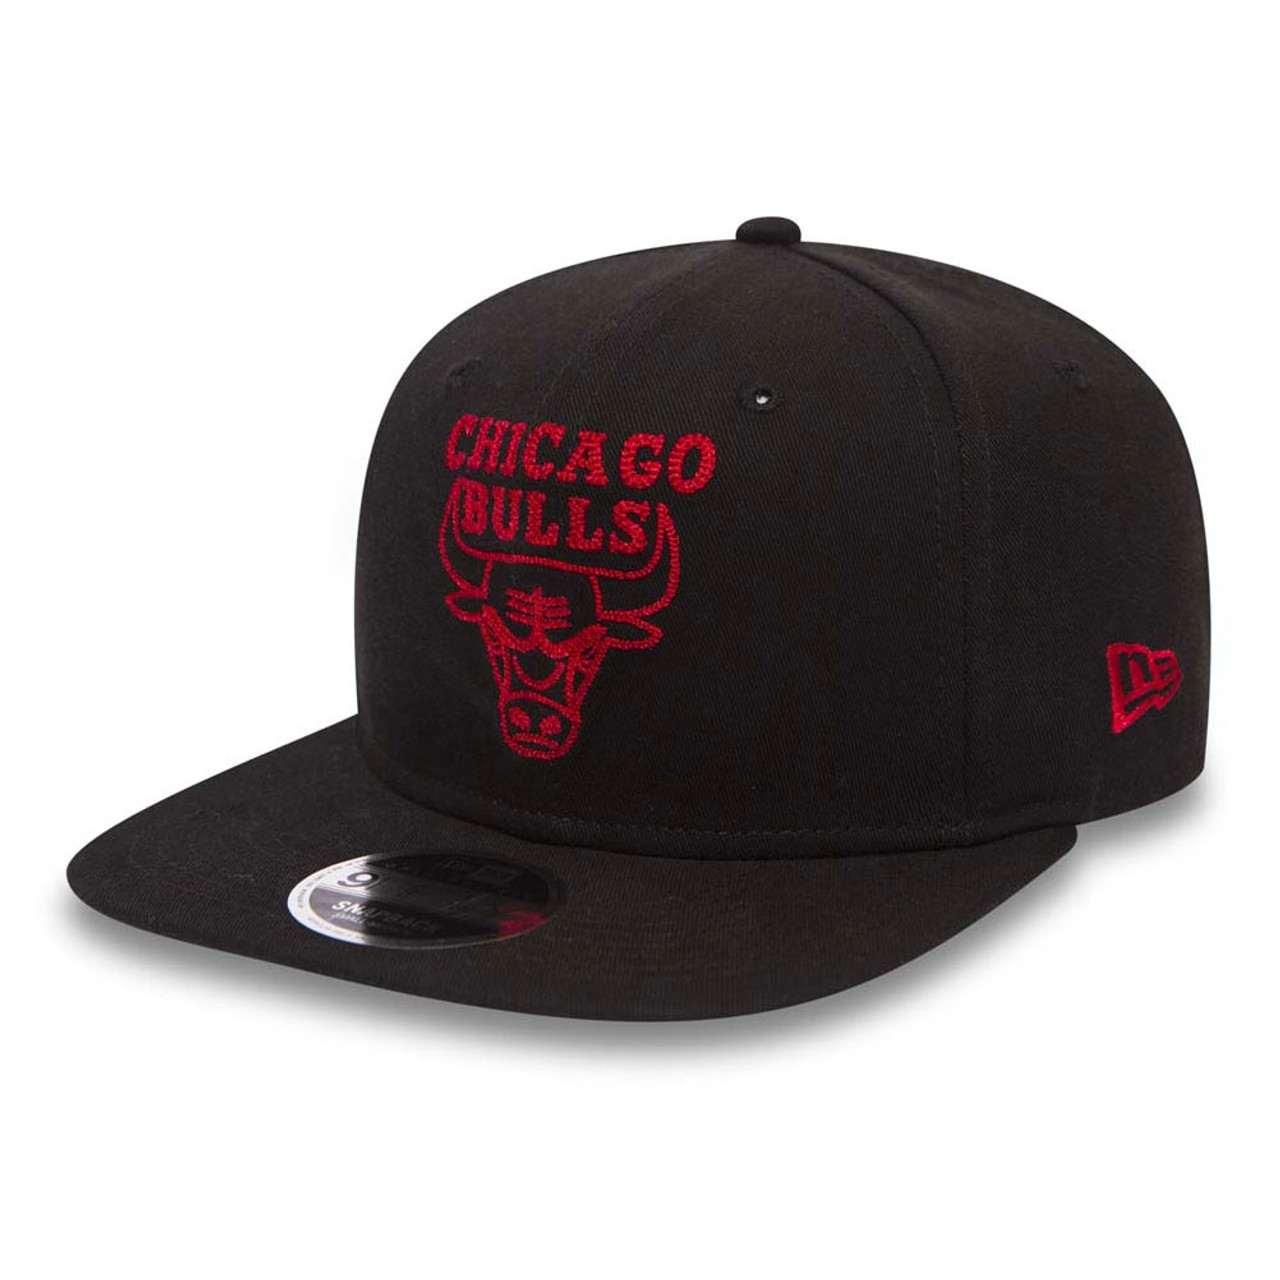 56e03554928 NEW ERA chicago bulls 9fifty chainstitch adjustable basketball cap ...